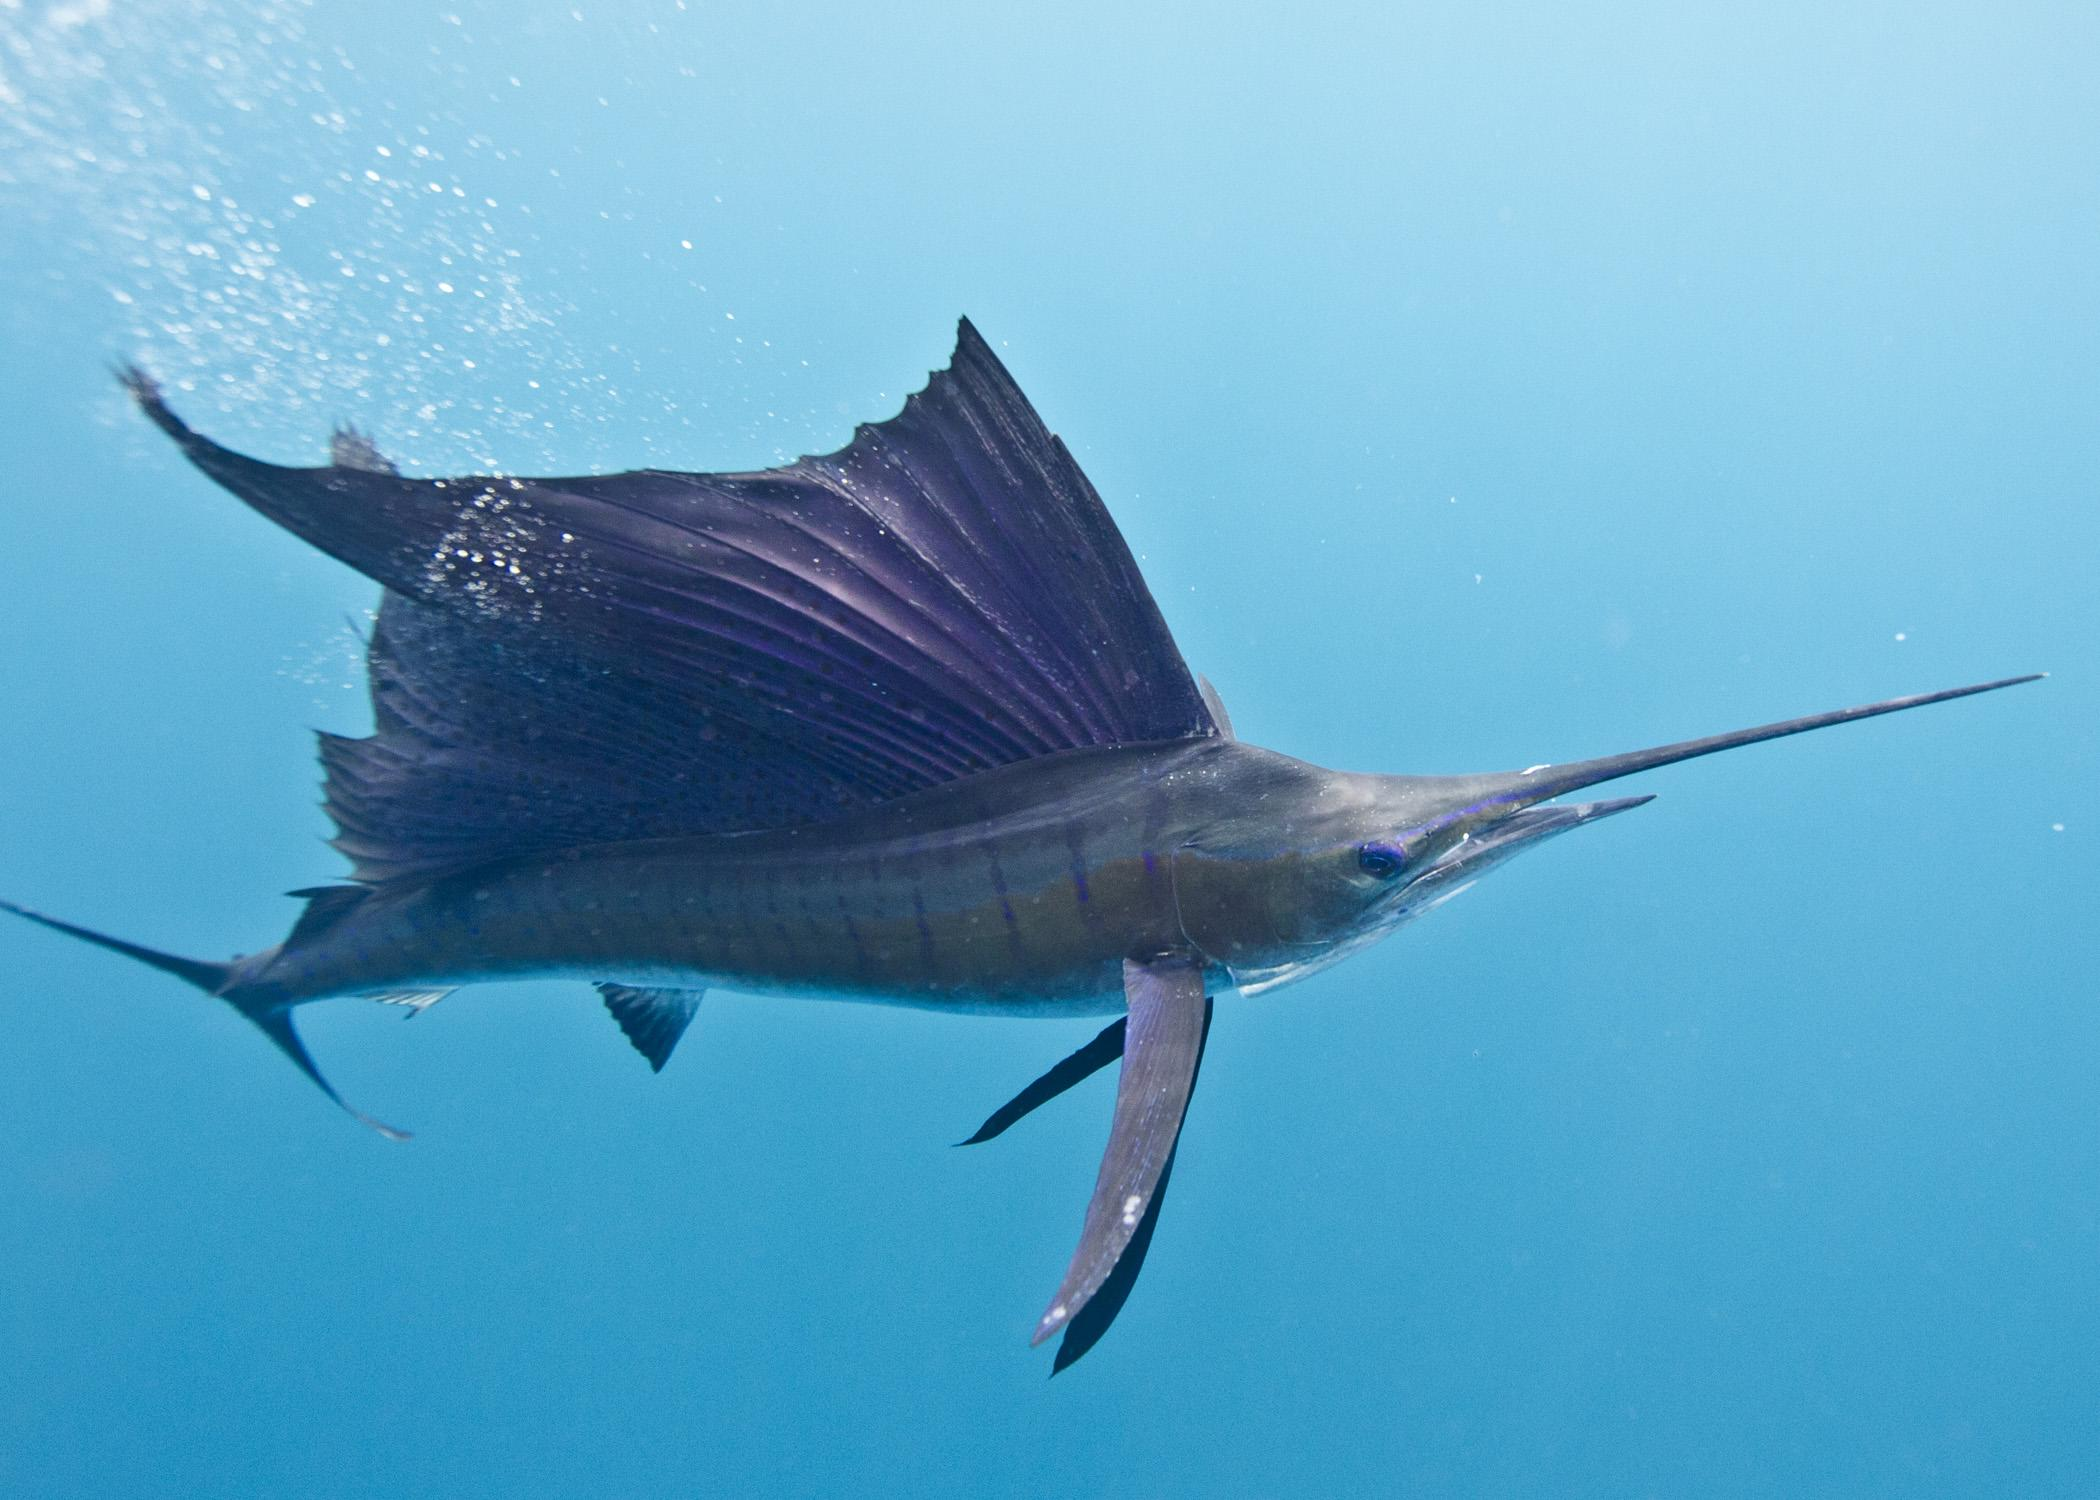 sailfish mexico fish marine life birds and terrestrial life